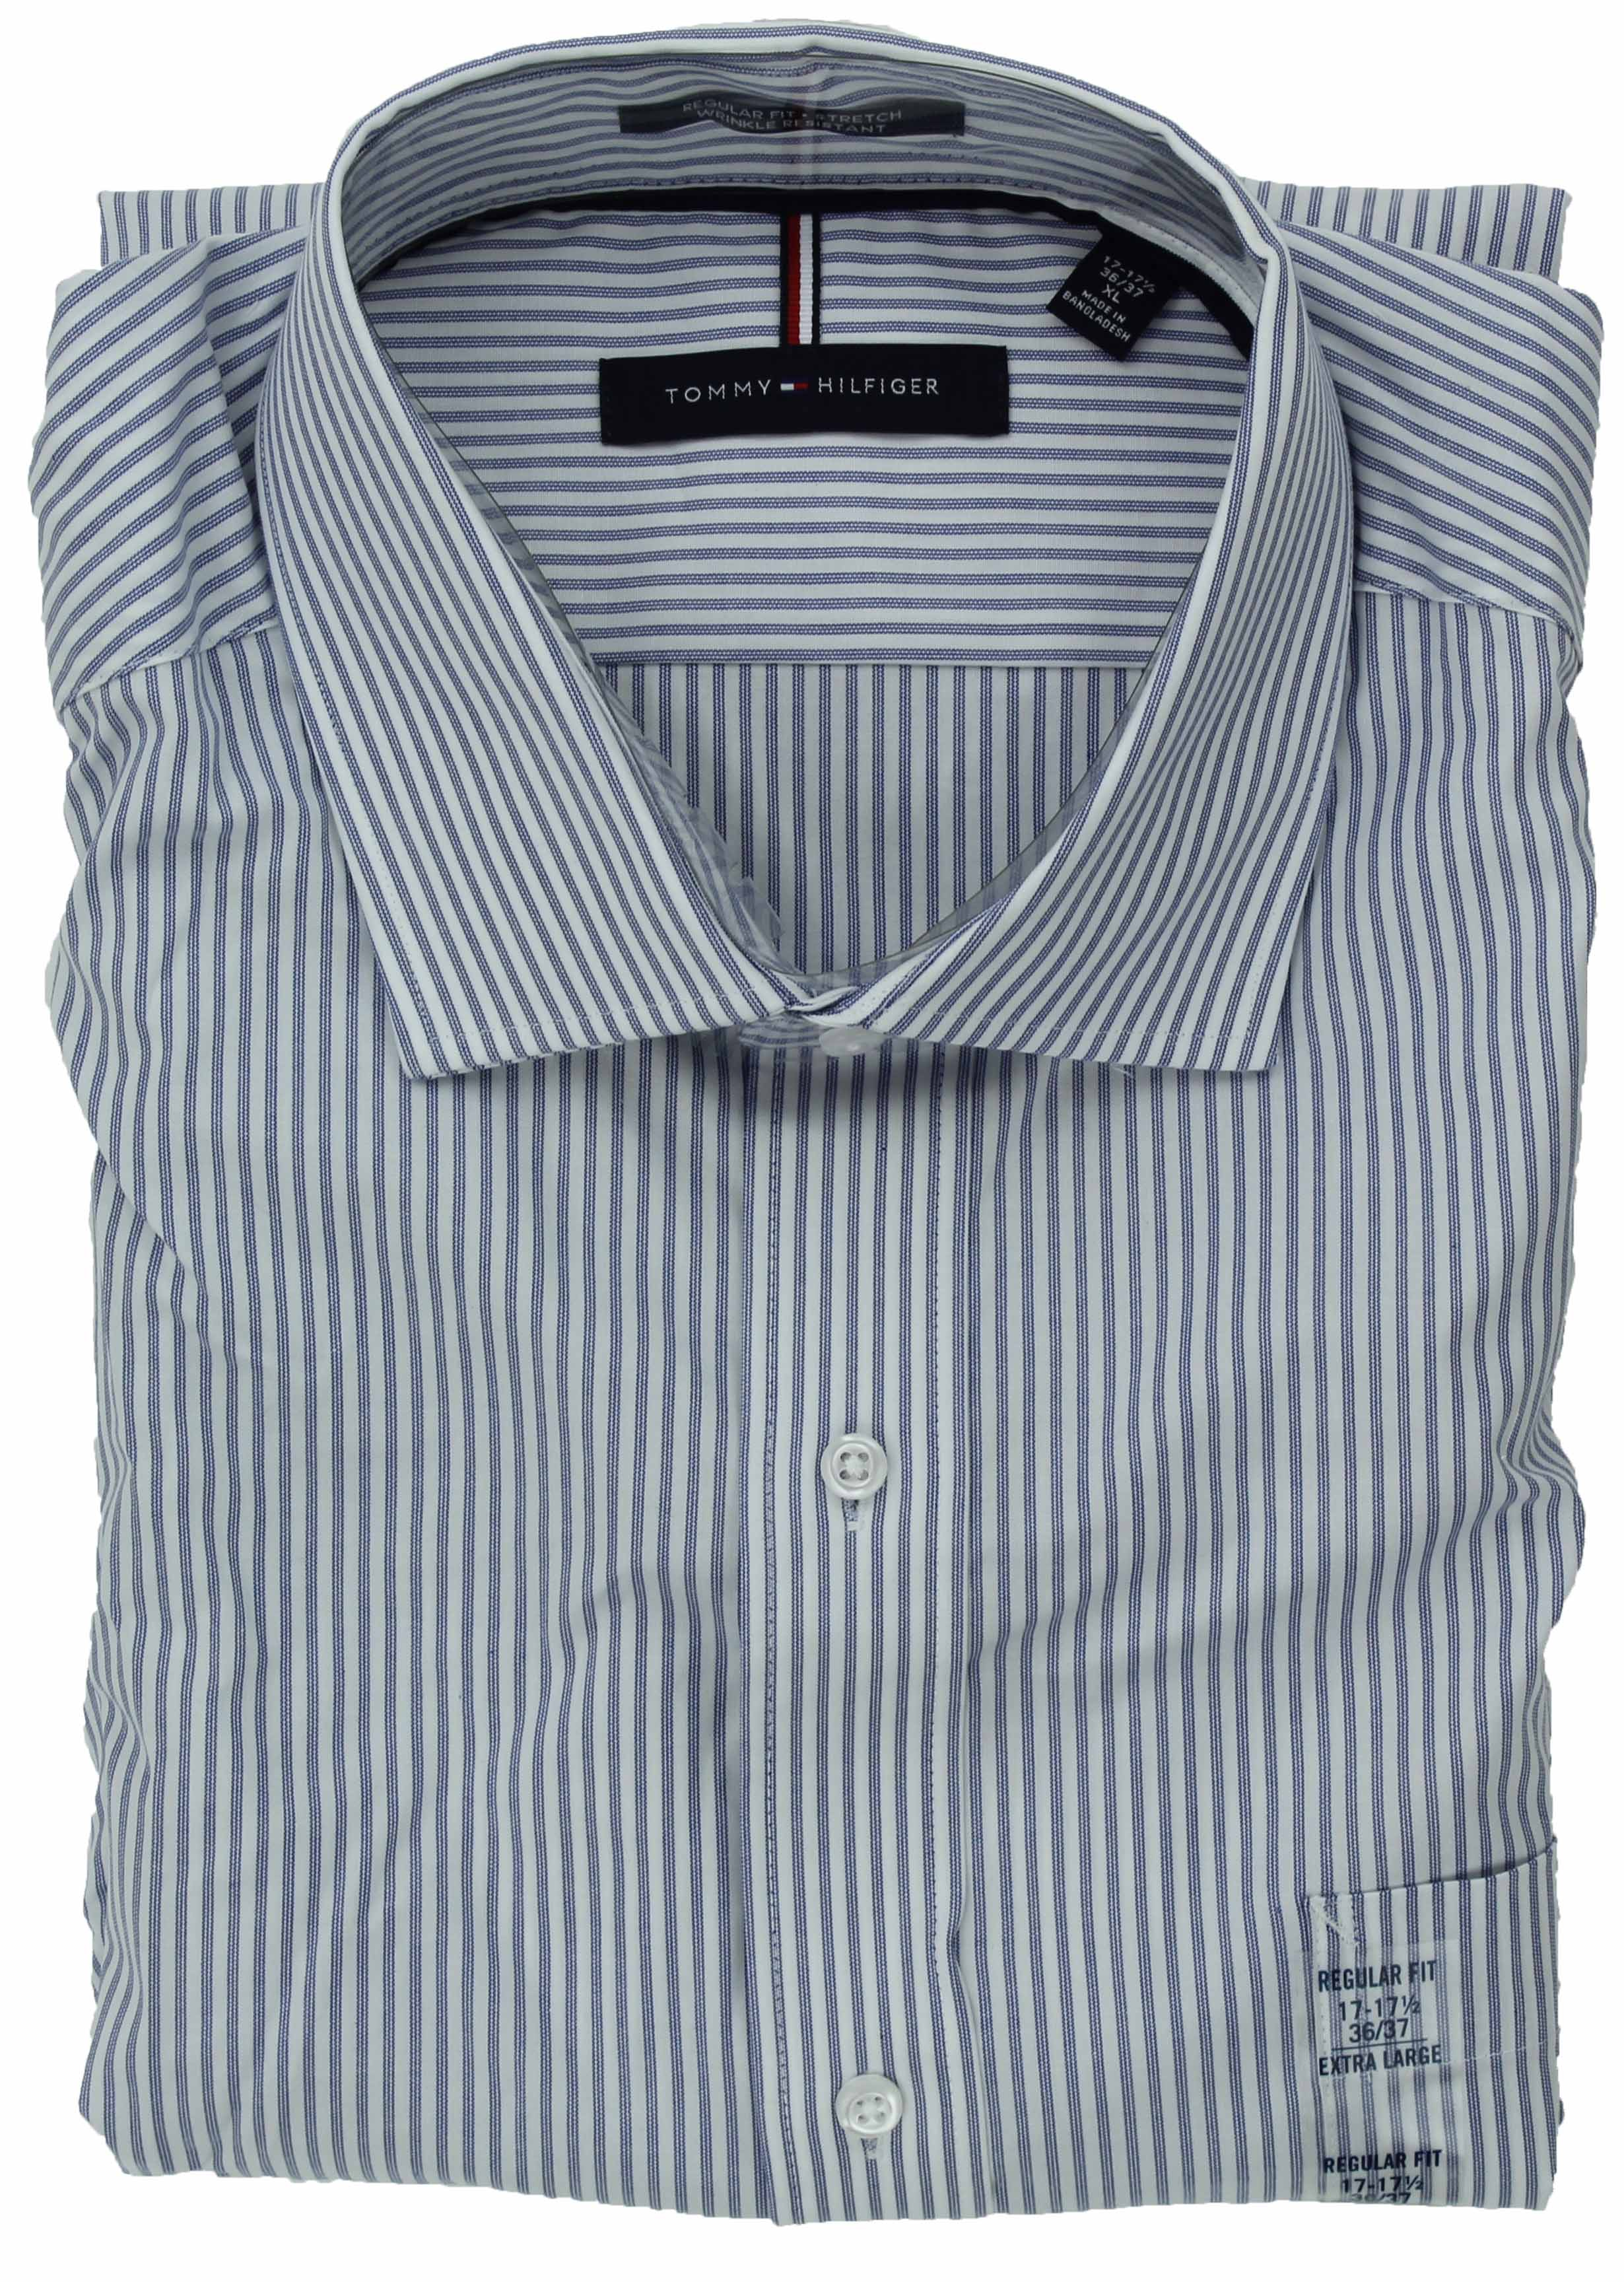 Tommy-Hilfiger-Mens-Long-Sleeve-Regular-Fit-Dress-Shirt miniature 33